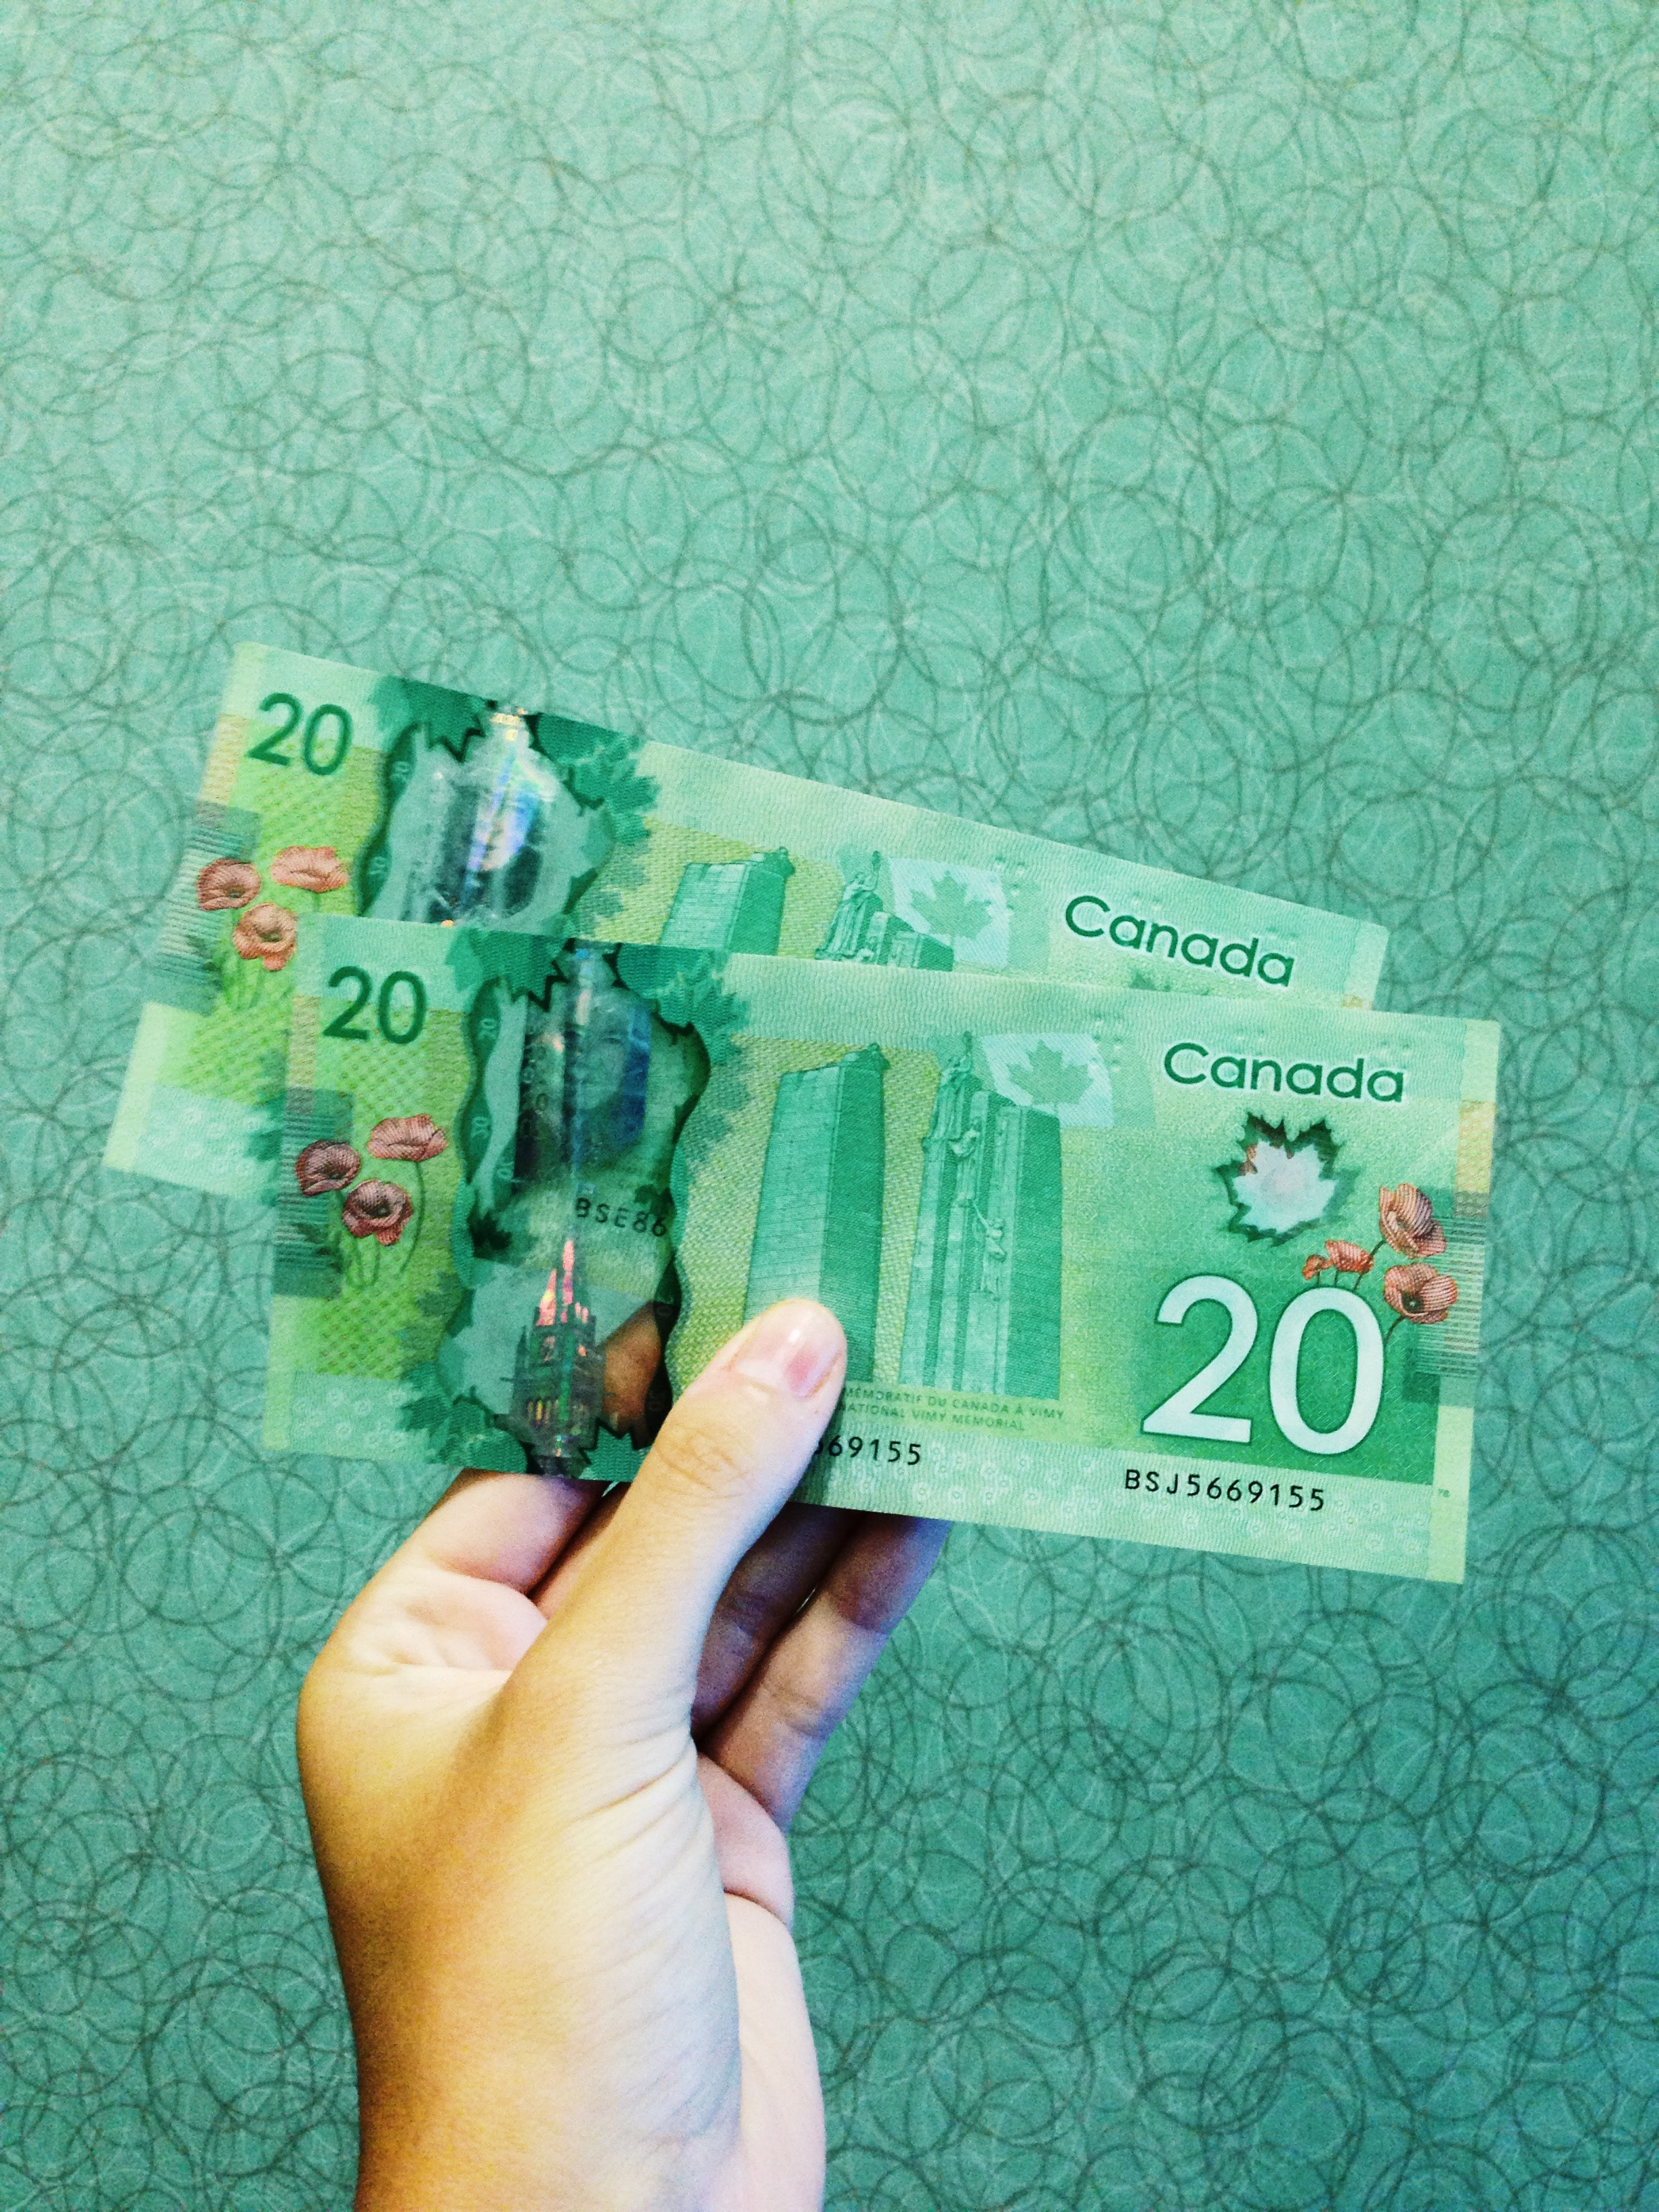 hand holding Canadian $20 bills.